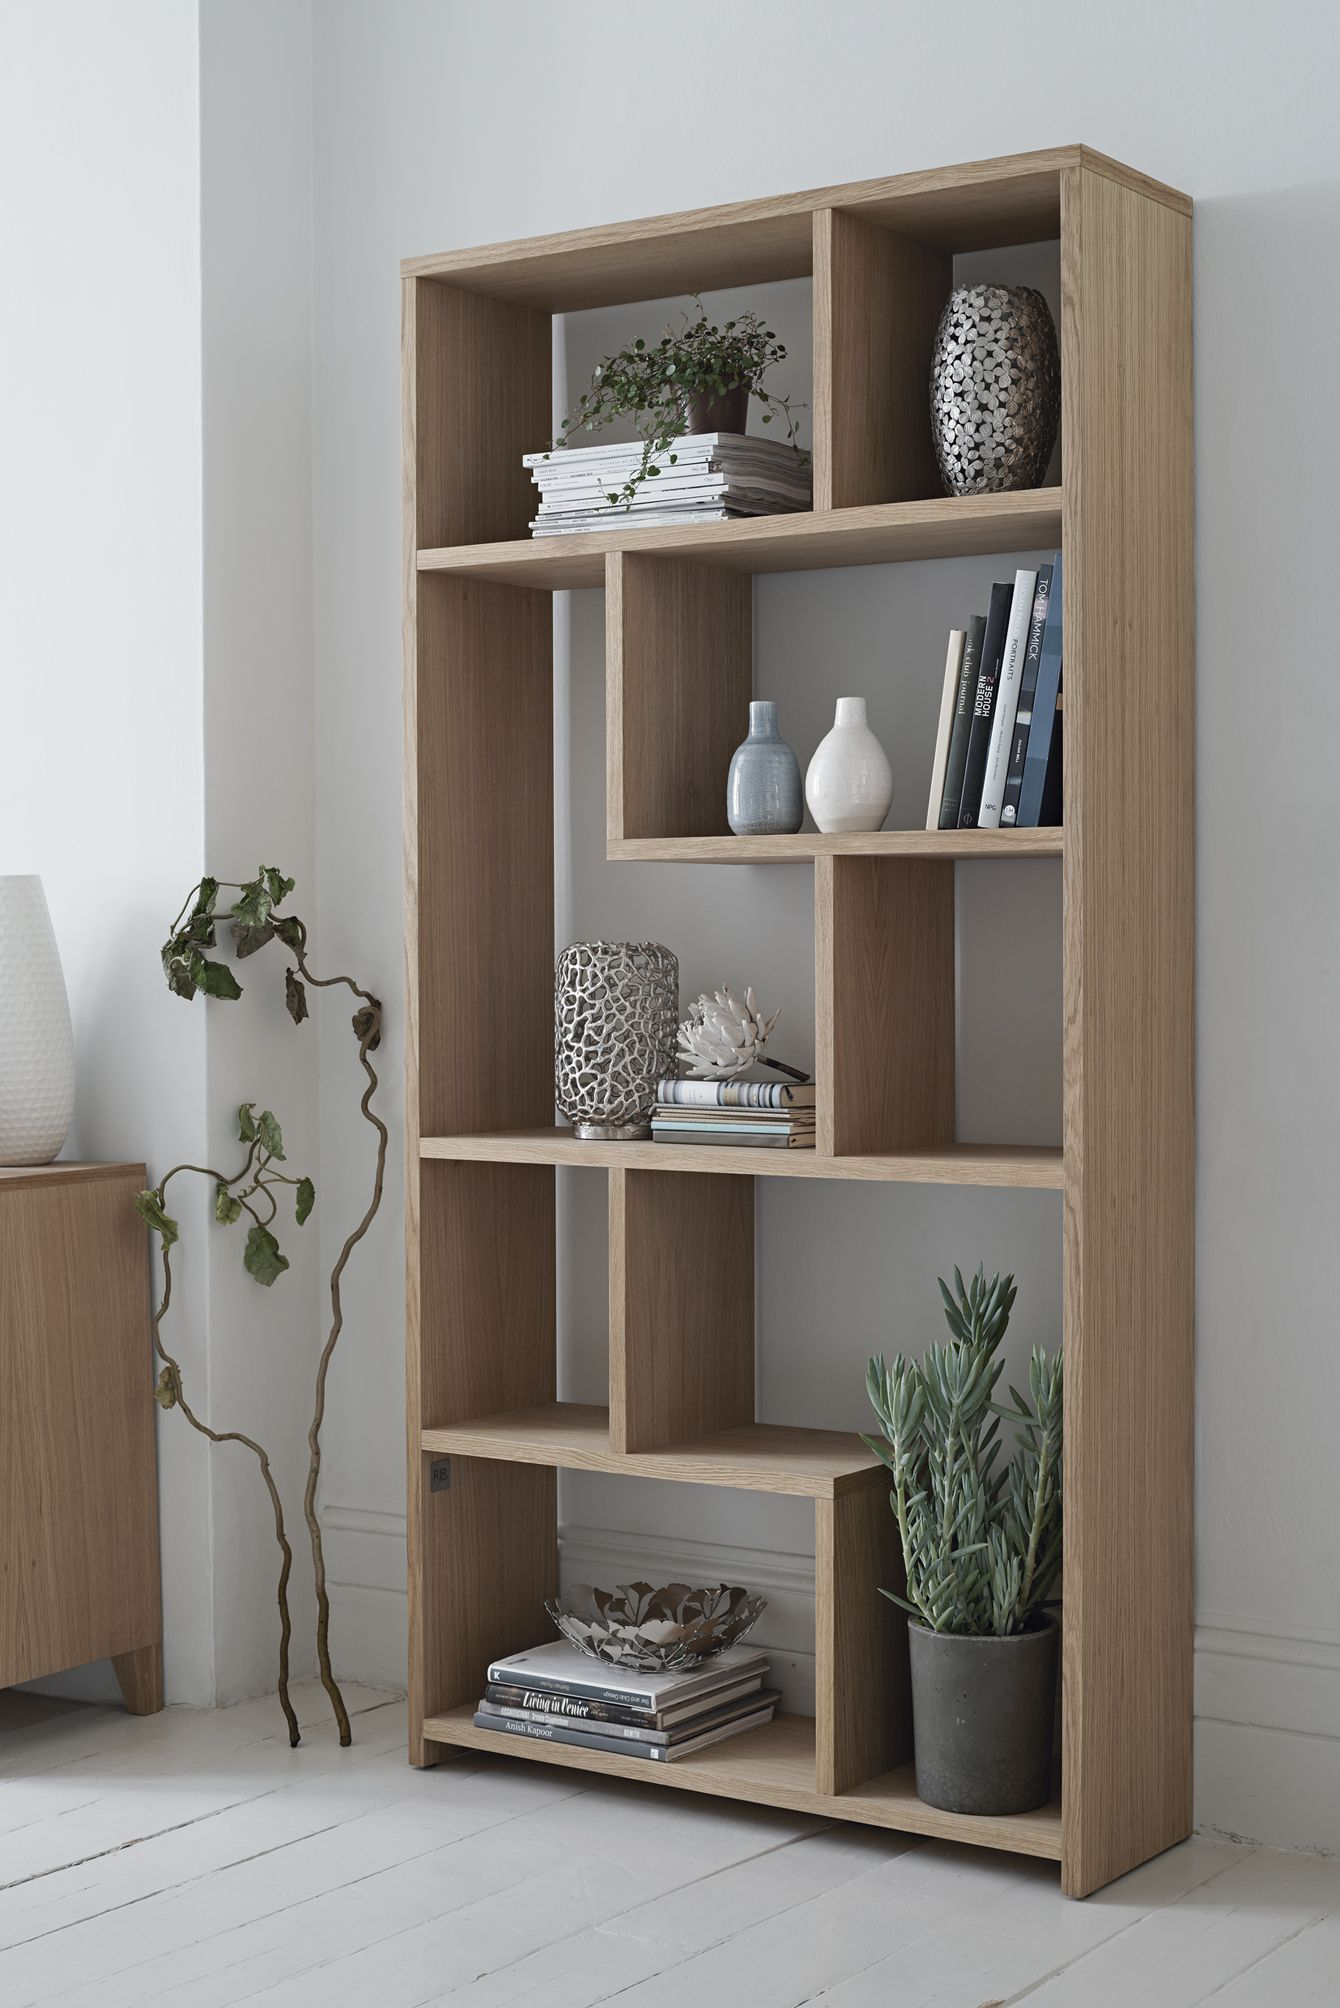 Don T Just Limit Yourself To Books On Your Shelving Unit Add Vases And Plants For The Perfe Shelving Units Living Room Living Room Shelves Shelving Unit Decor